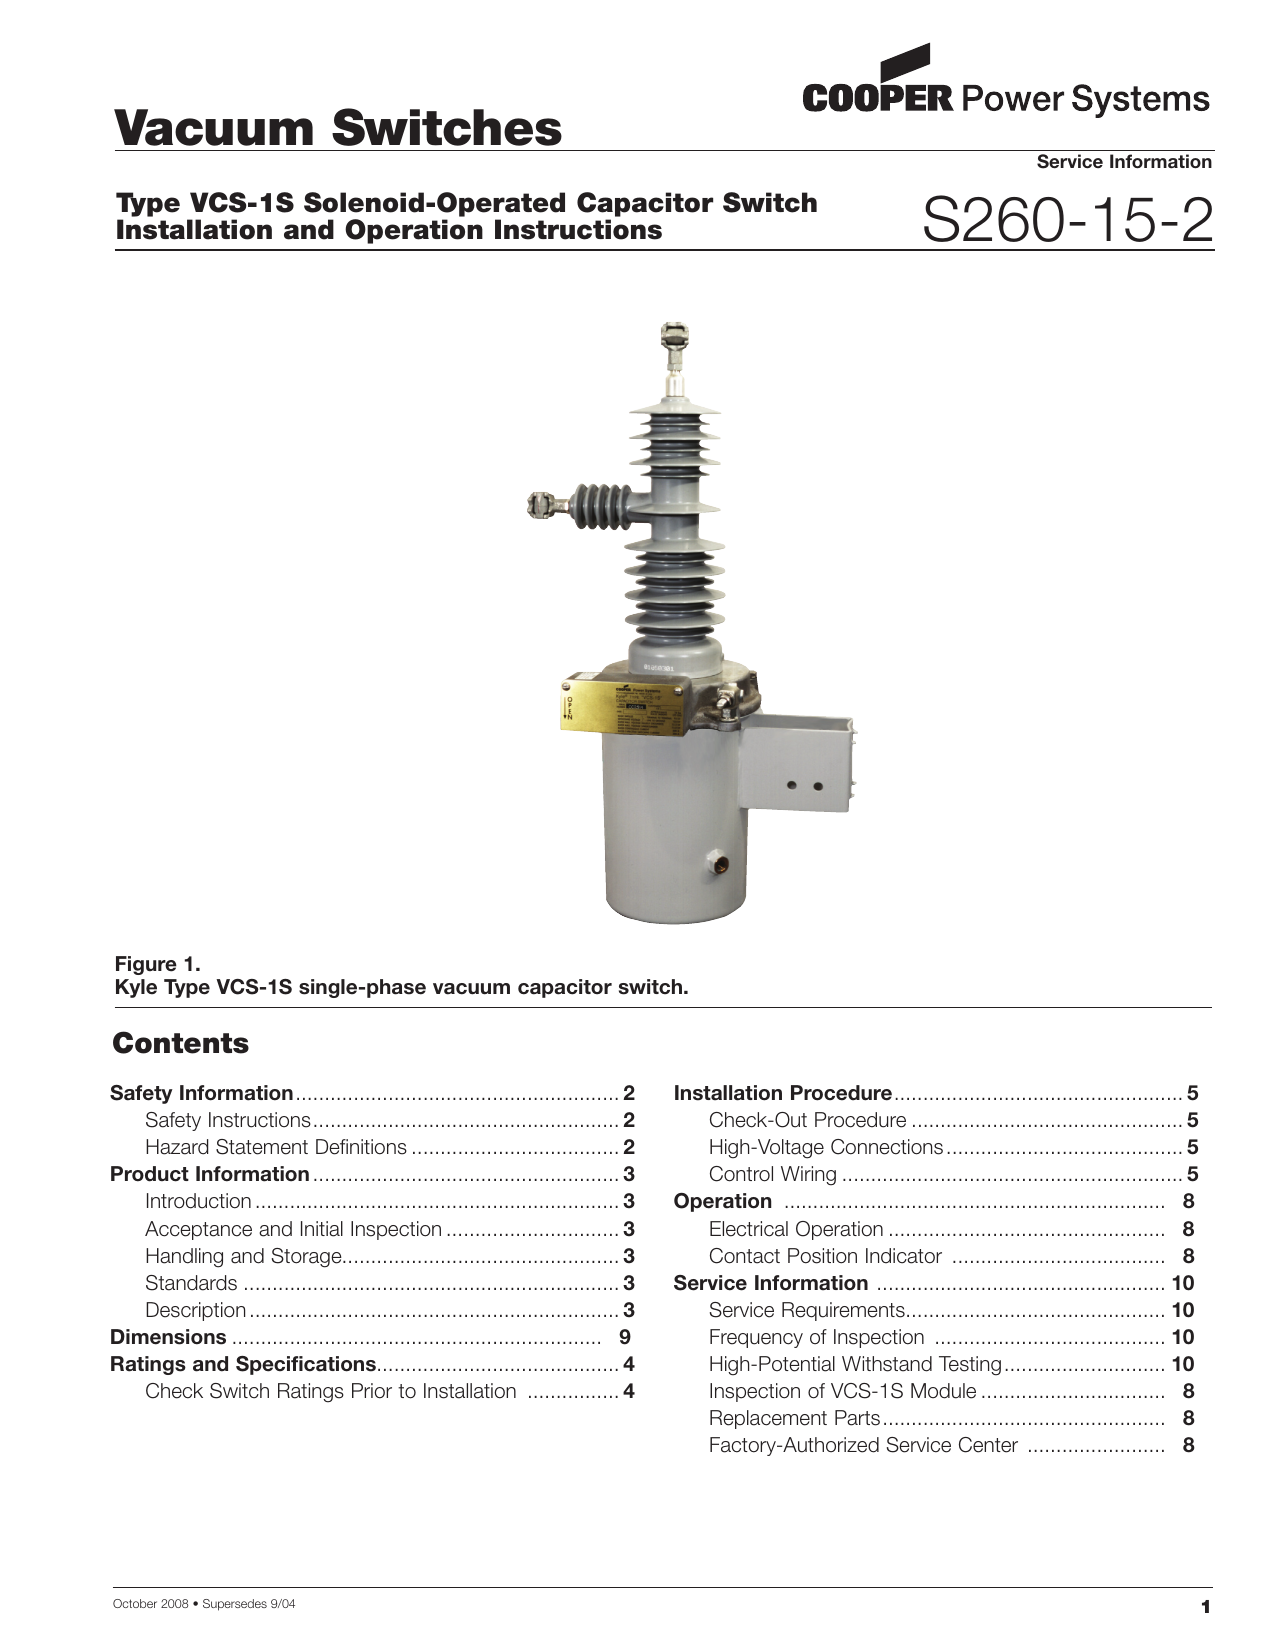 S260 15 2 Vacuum Switches Contents Type Vcs 1s Solenoid Operated Wiring Diagram Capacitor Switch